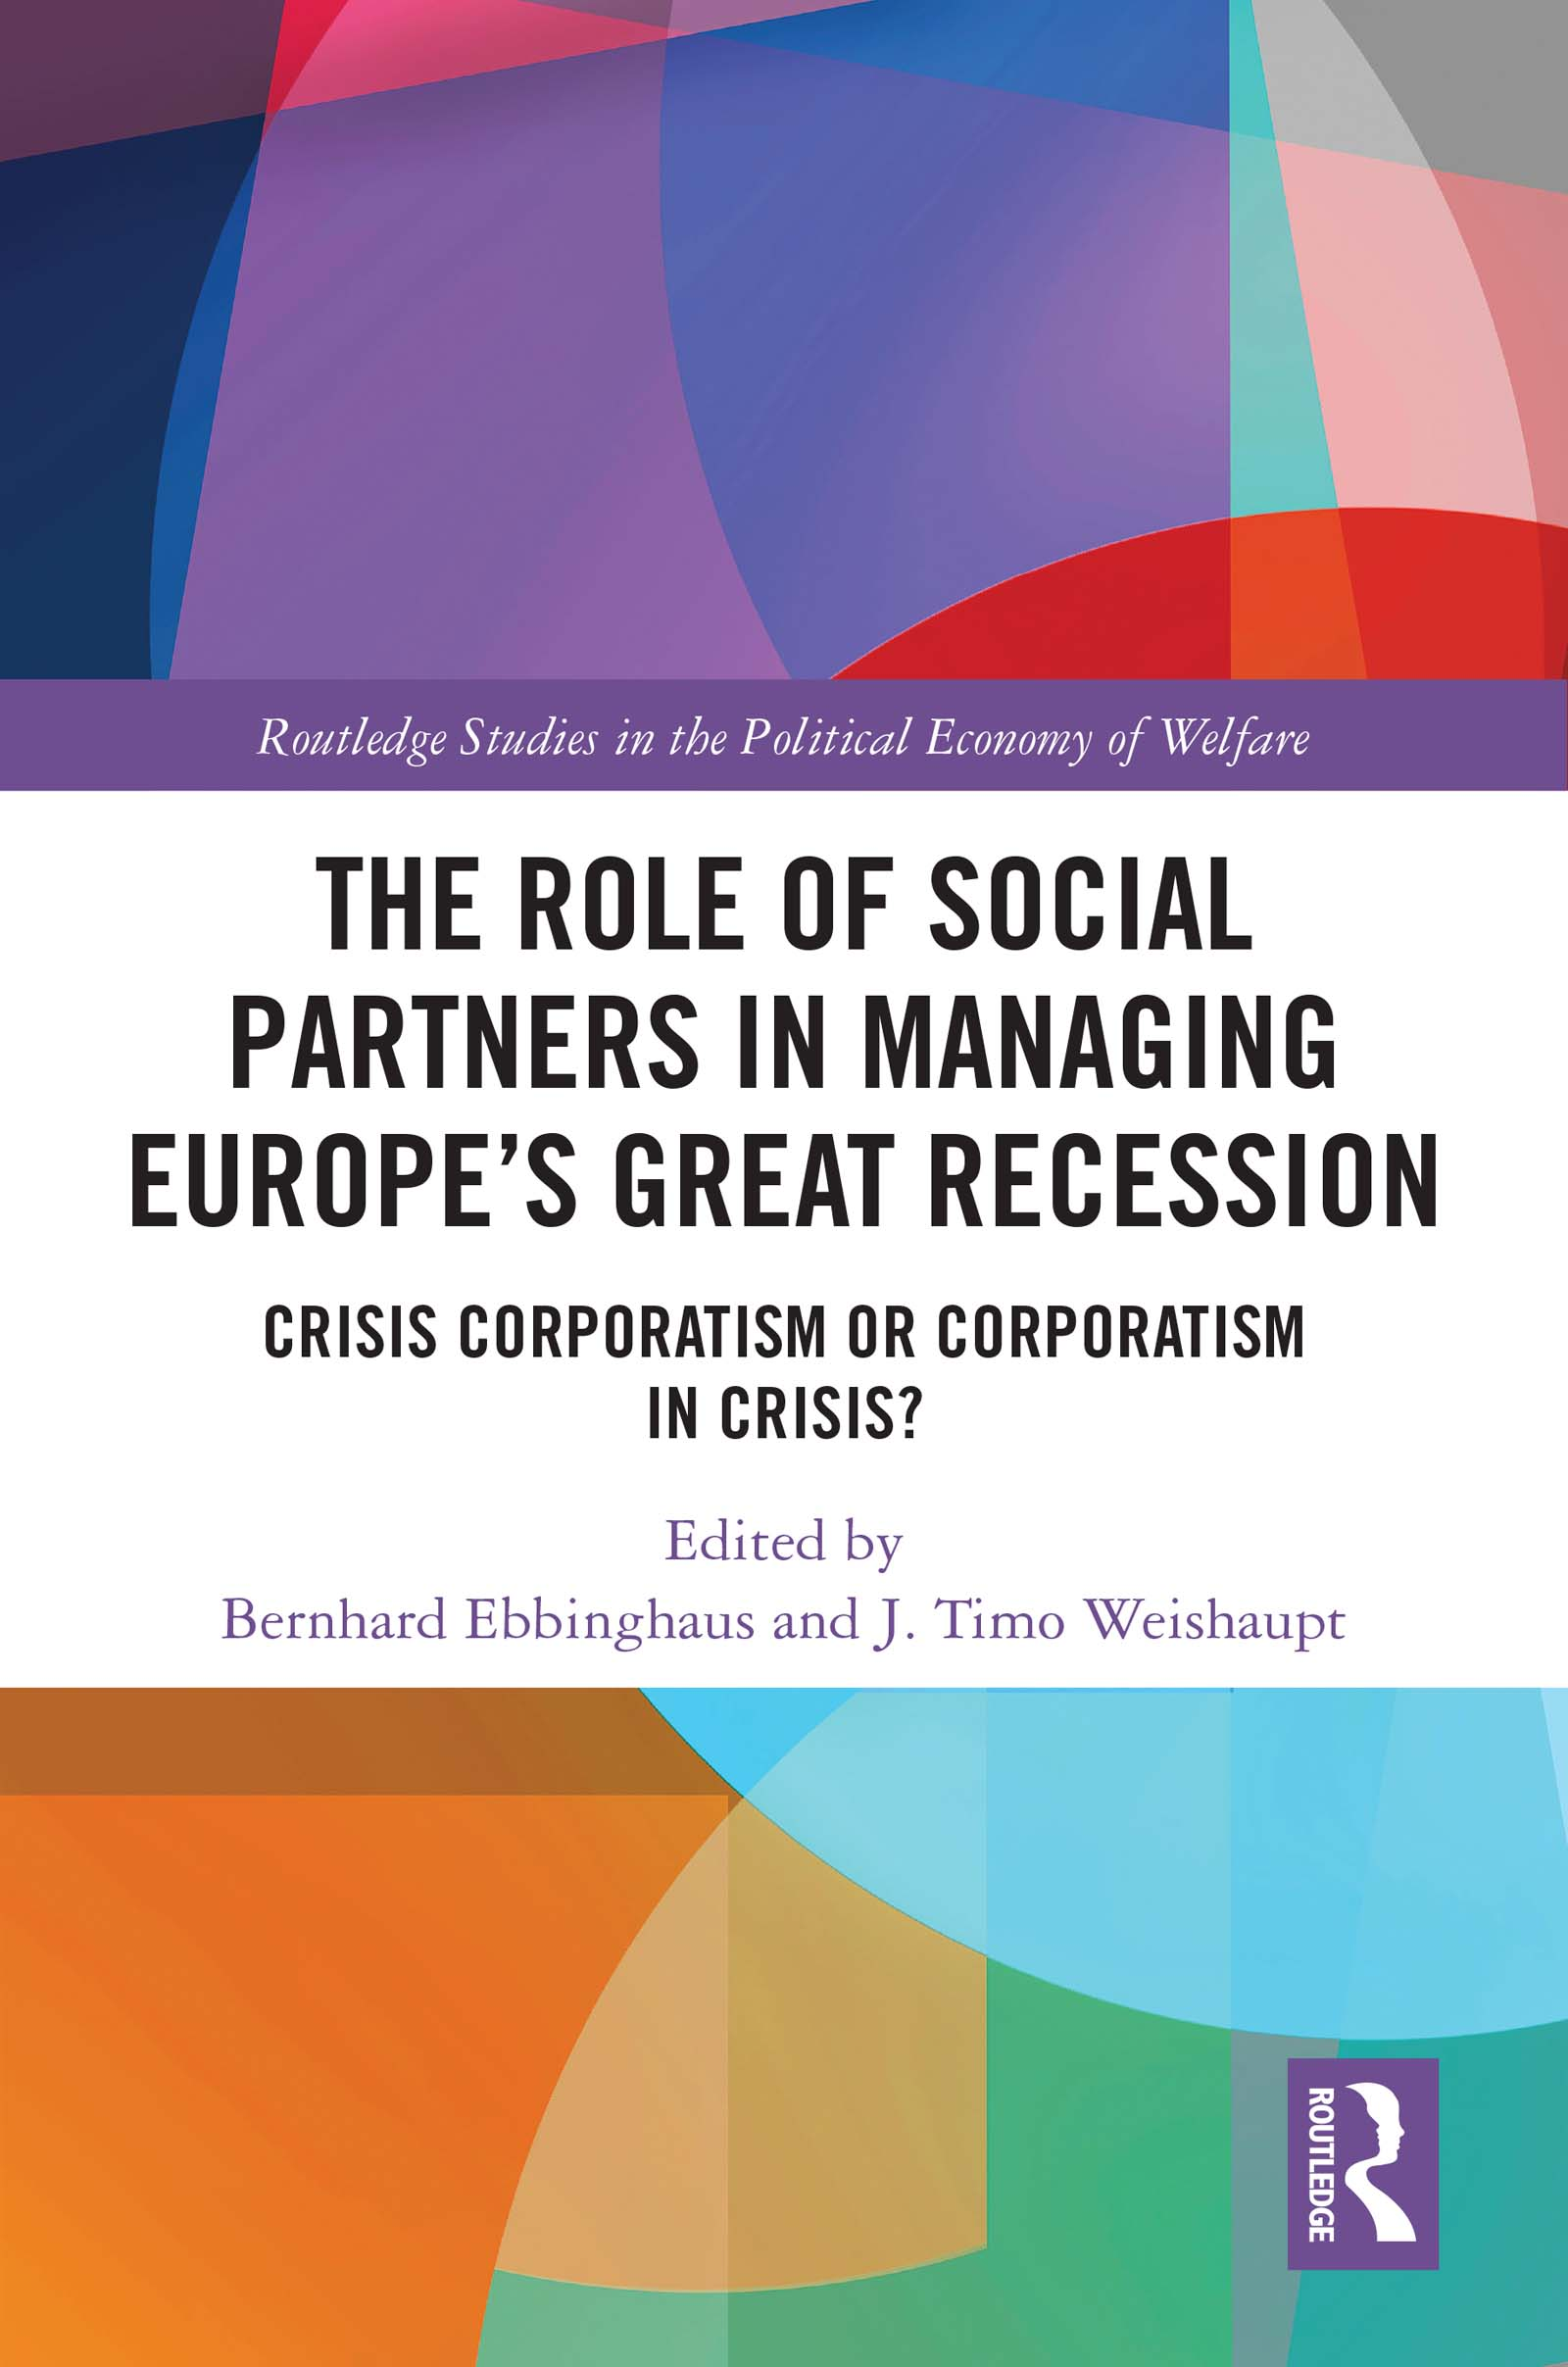 Unilateral crisis prevention and crumbling social partnership in Poland